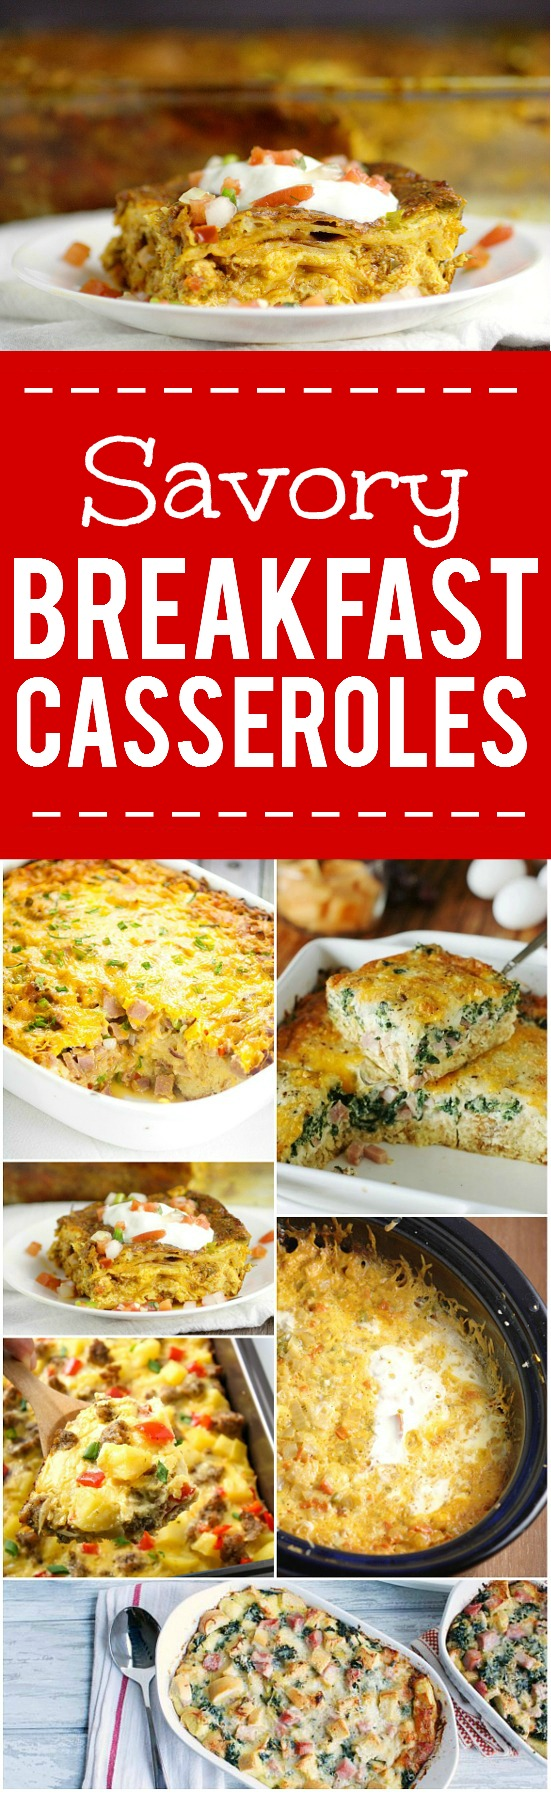 44 Savory Breakfast Casserole Recipes - 44 of the BEST Savory Breakfast Casserole Recipes for all the savory flavor lovers out there. Overnight breakfast casseroles, bacon, eggs, sausage, or veggies, there's something for everyone! There's some great make ahead and overnight breakfast recipes for Christmas and Easter here!